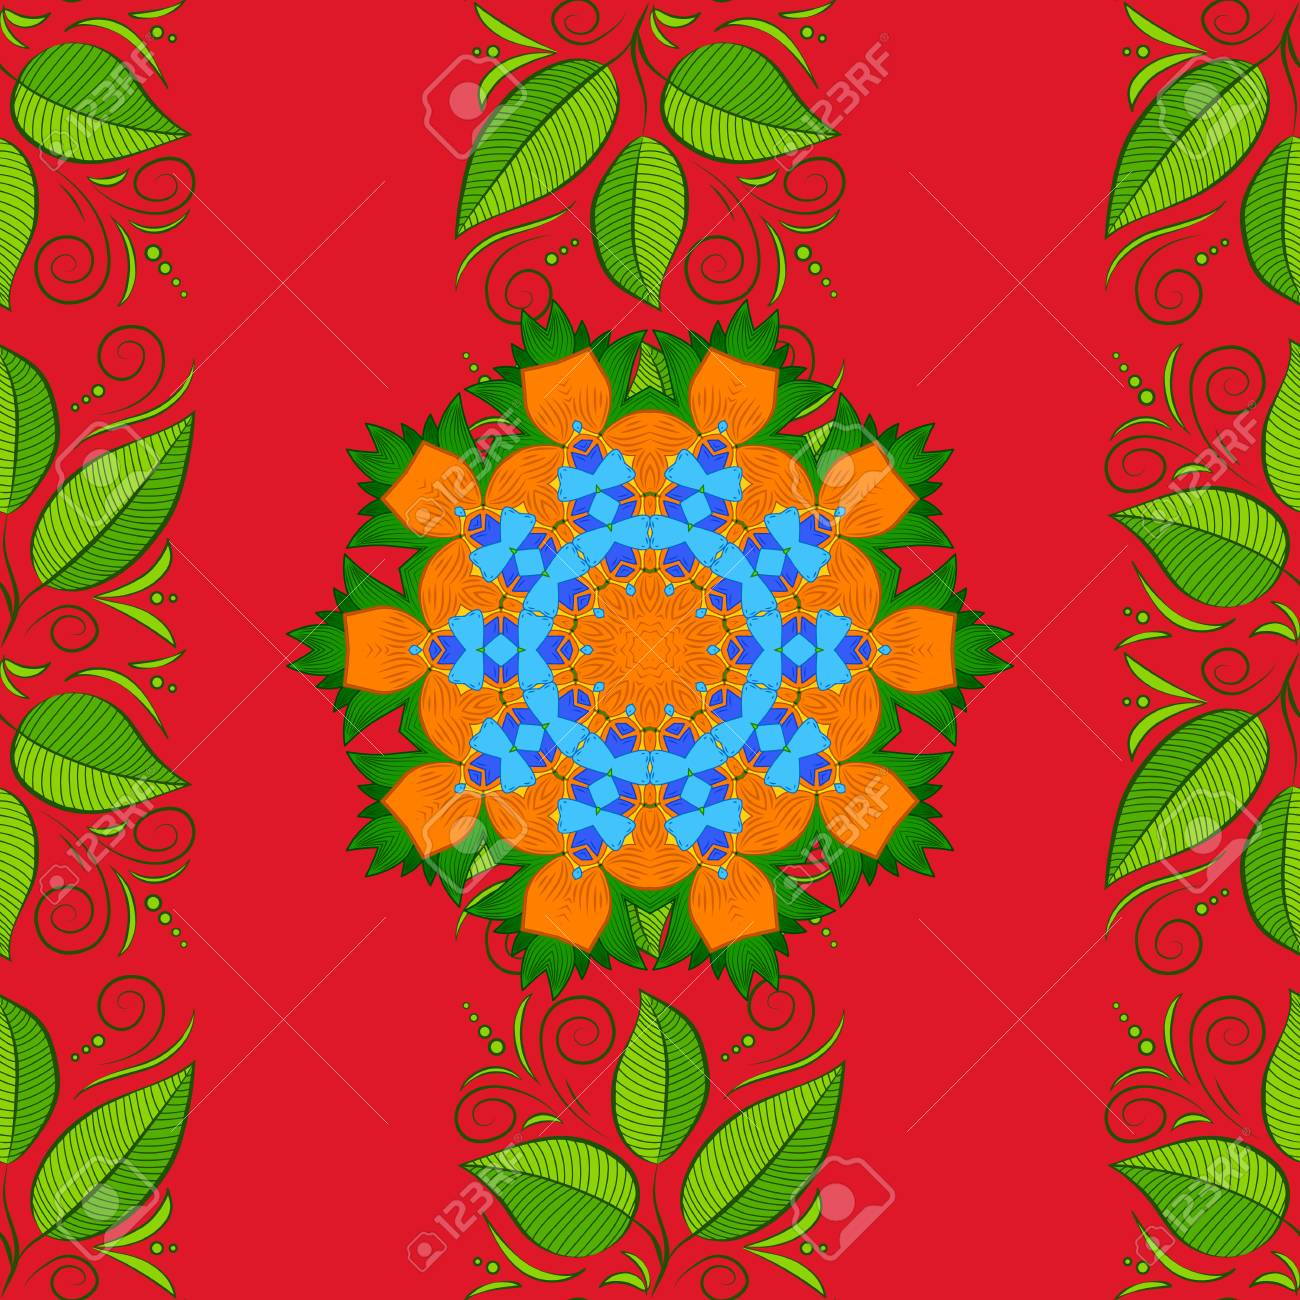 Vector flat leaves seamless pattern. Leaves on colored background. Design gift wrapping paper, greeting cards, posters and banner design. - 126481080